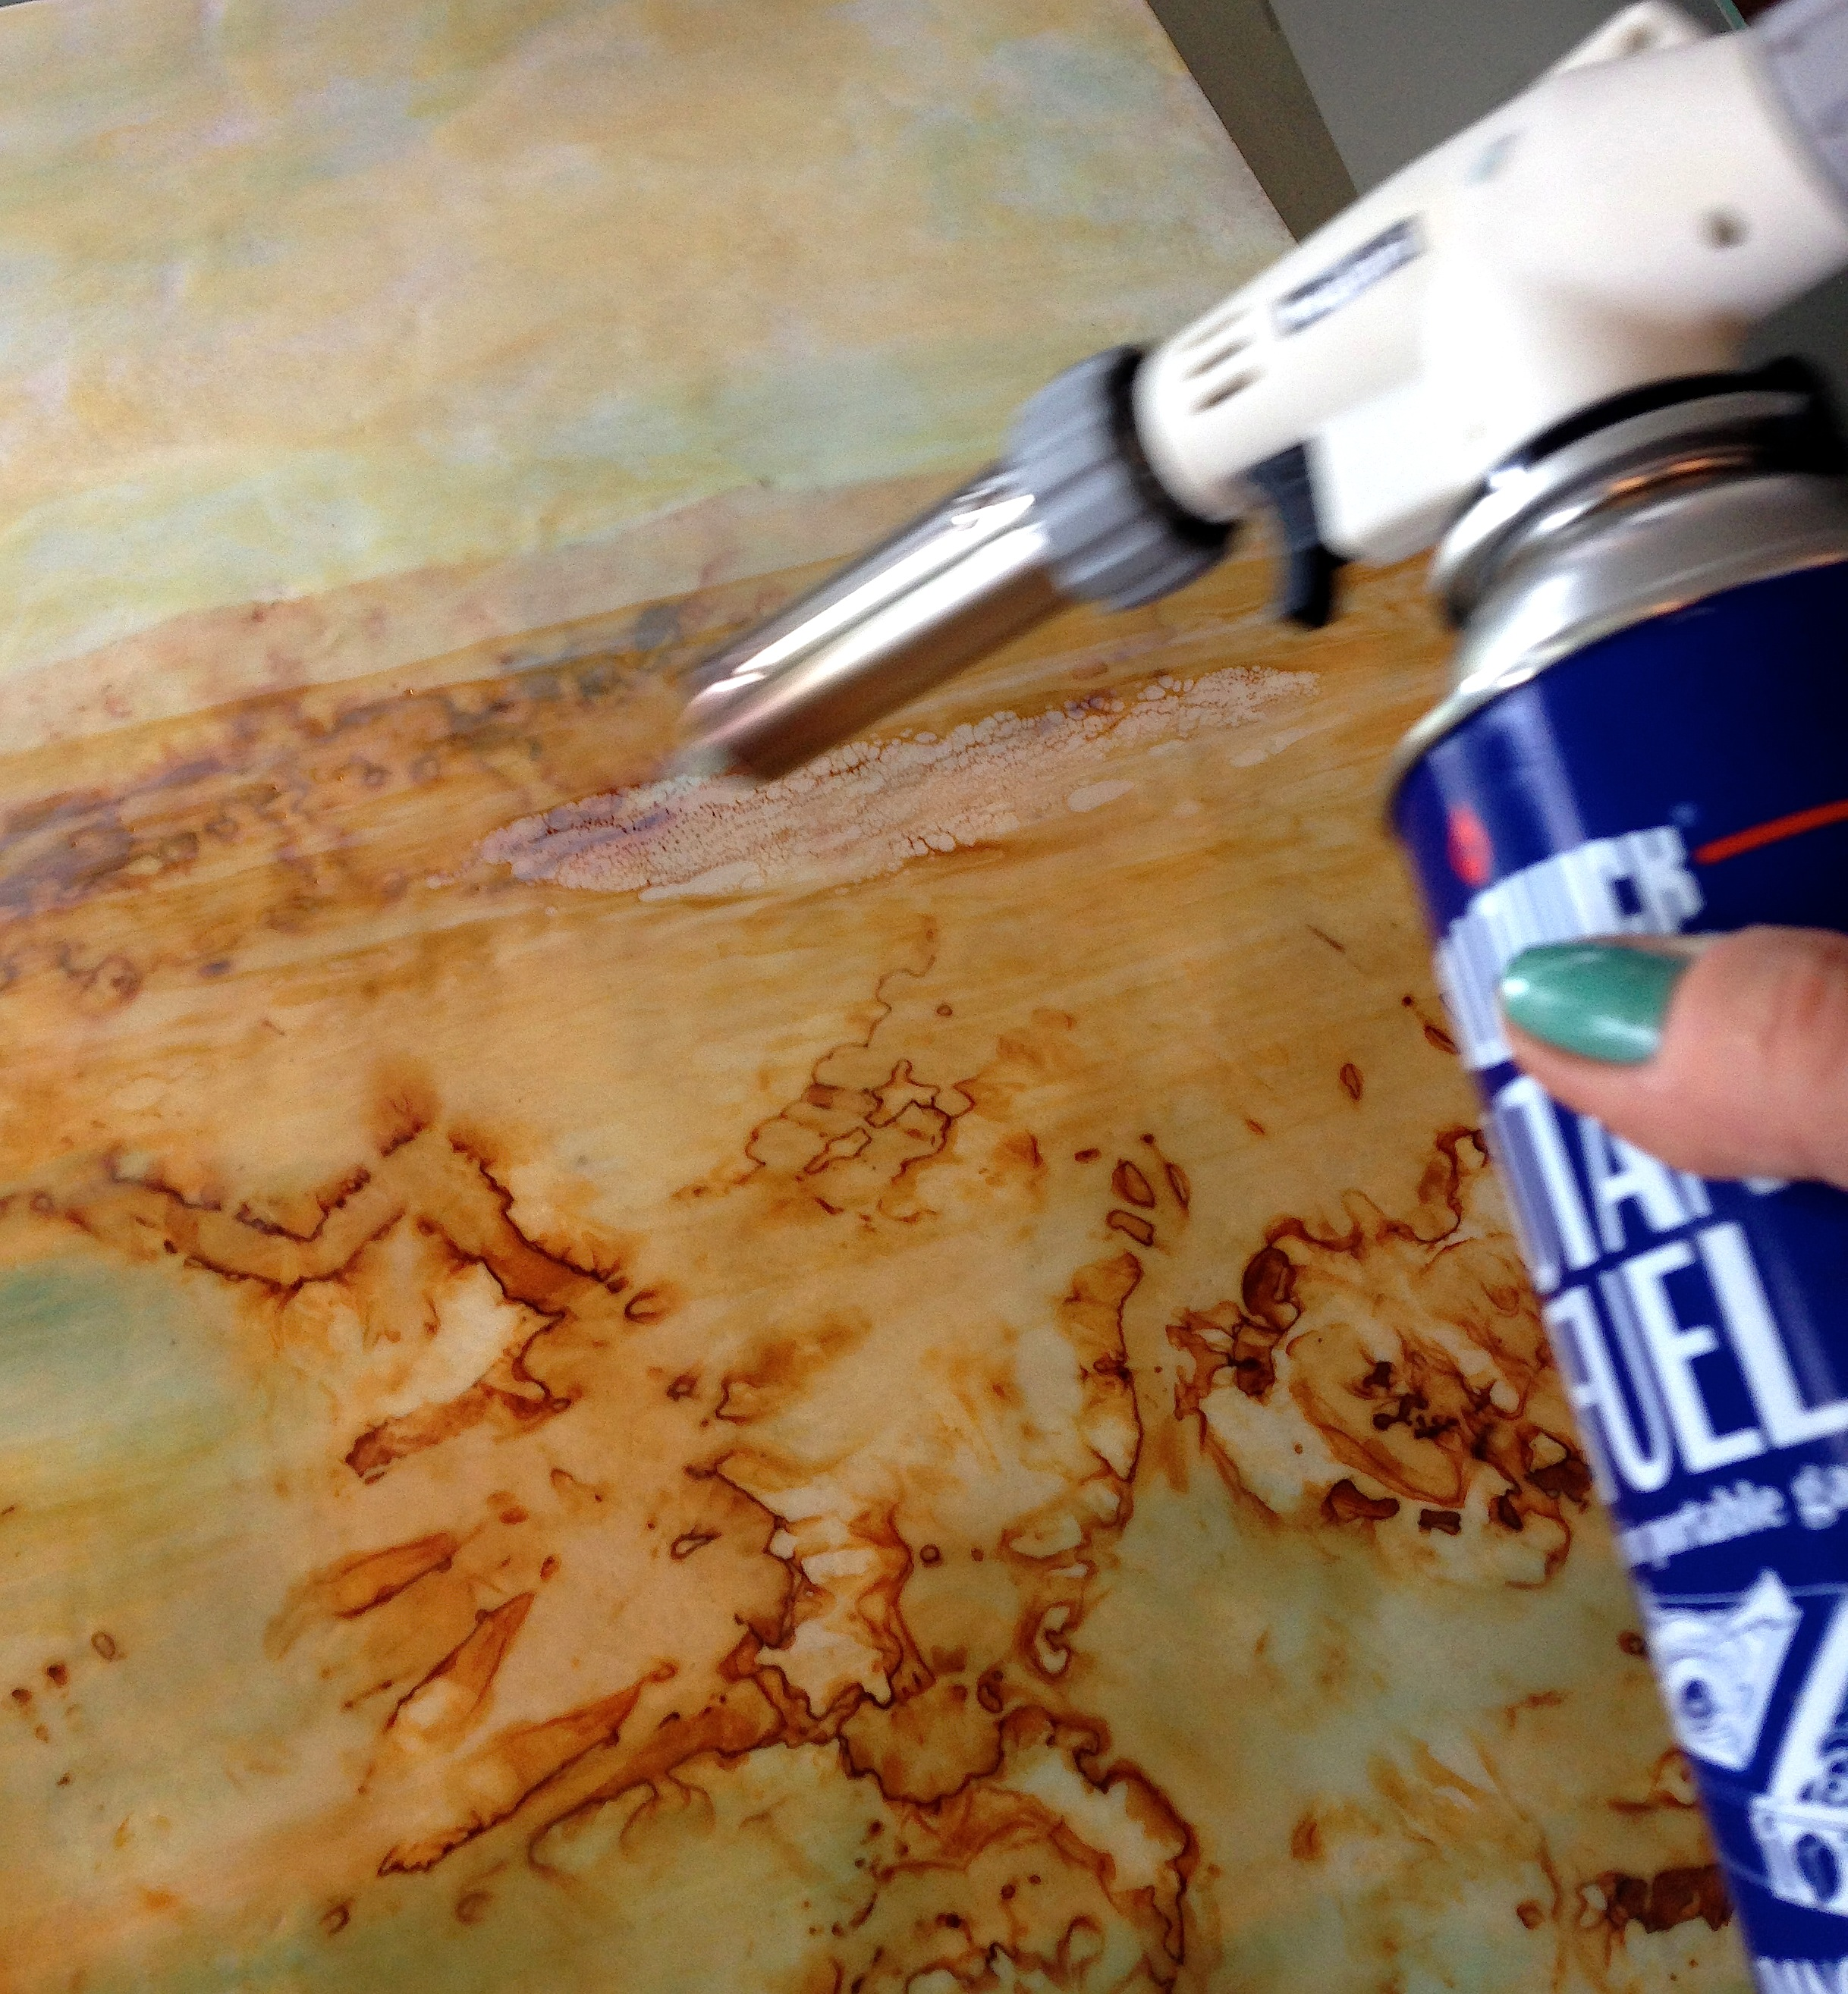 Using a butane torch to gently fuse a layer of wax over rusted silk, one of at least 12 layers in the process.